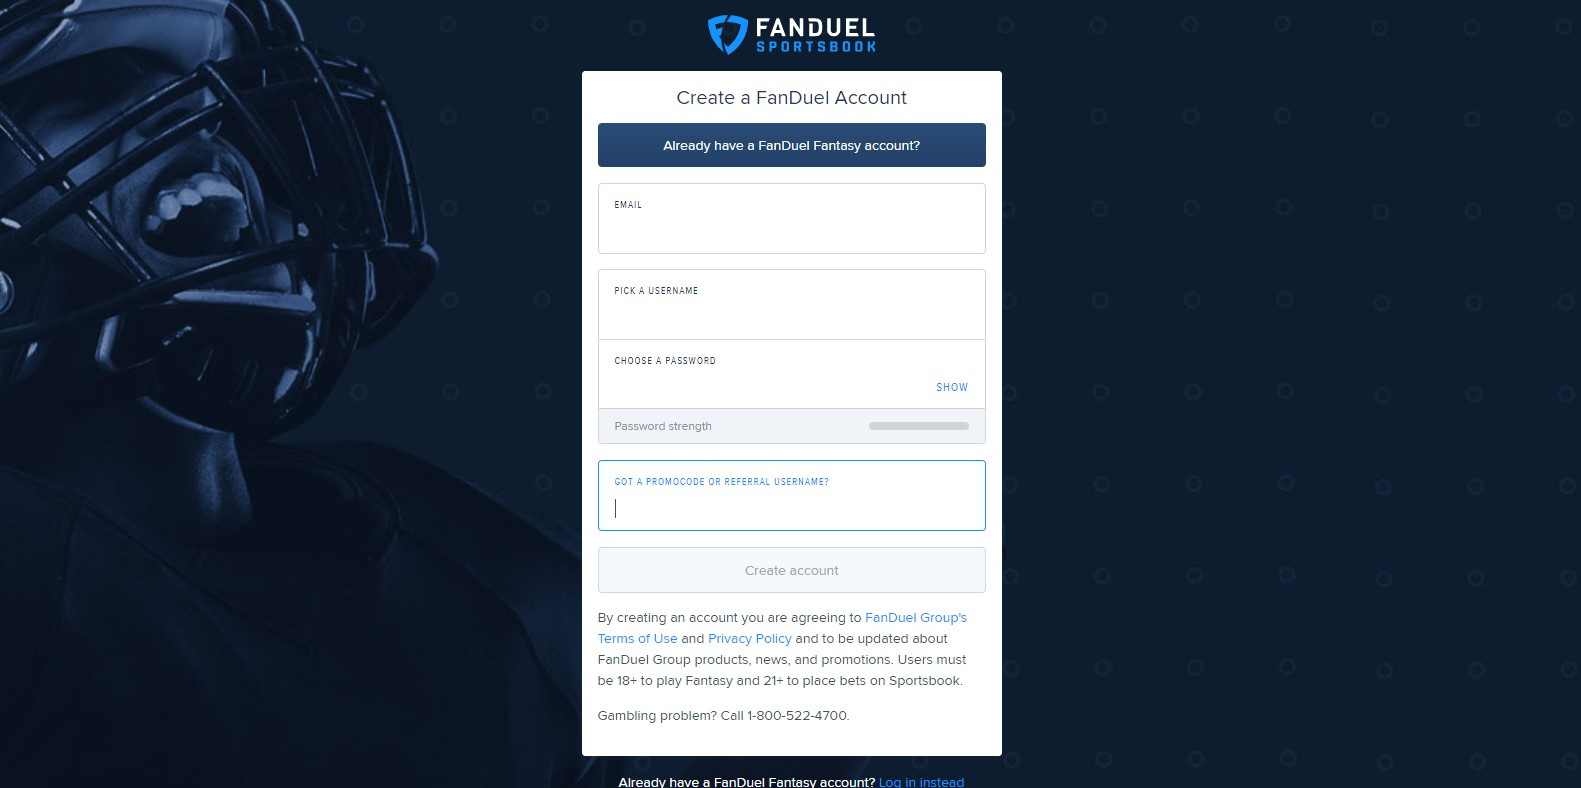 fanduel sign up 2